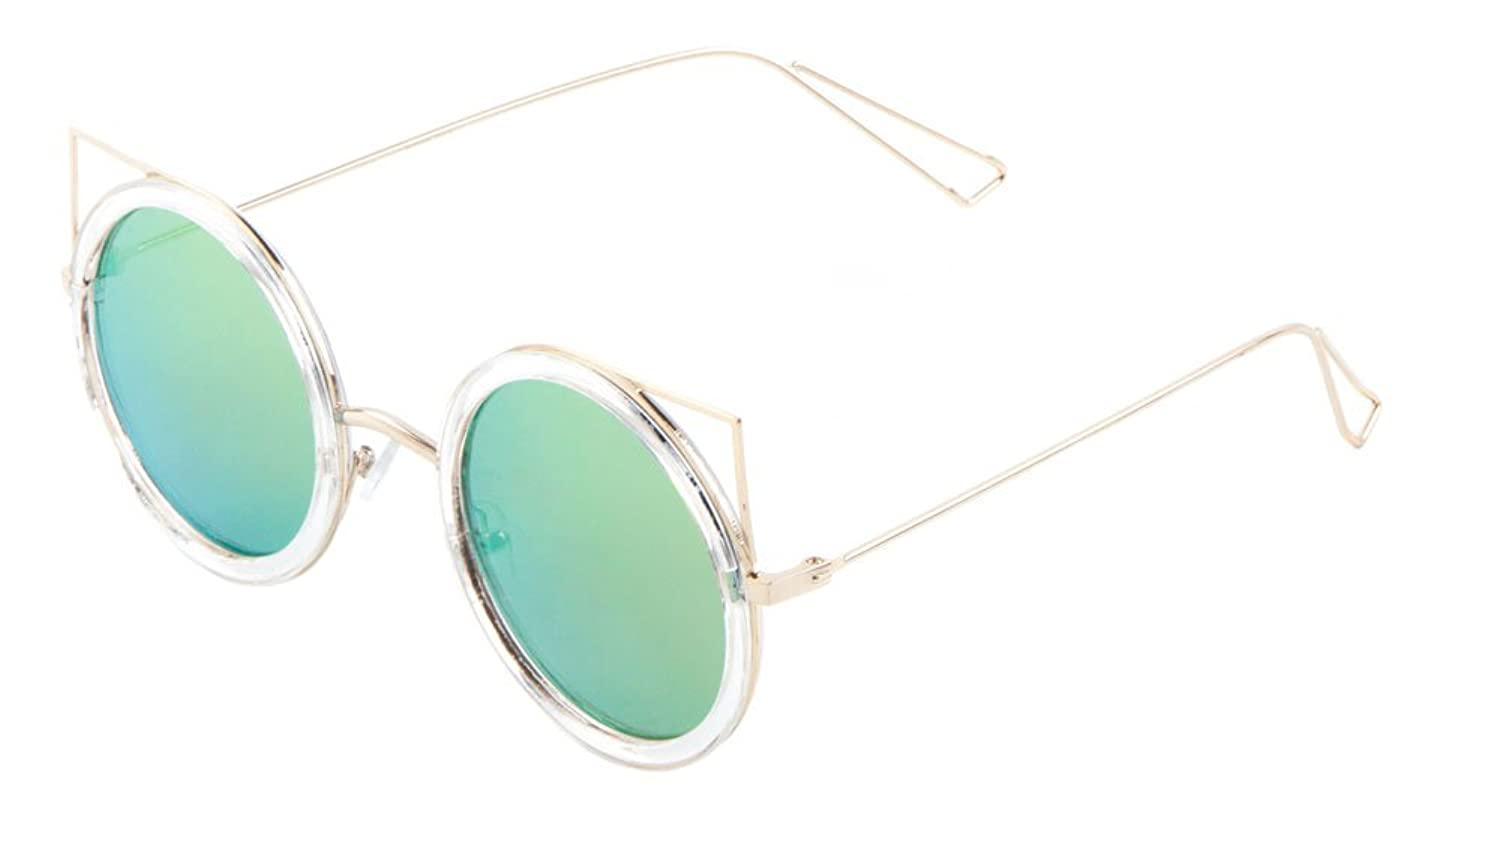 Sunglasses Luxe. Metal Round Cat Eye Sunglasses. (CLEAR YELLEW GREEN)